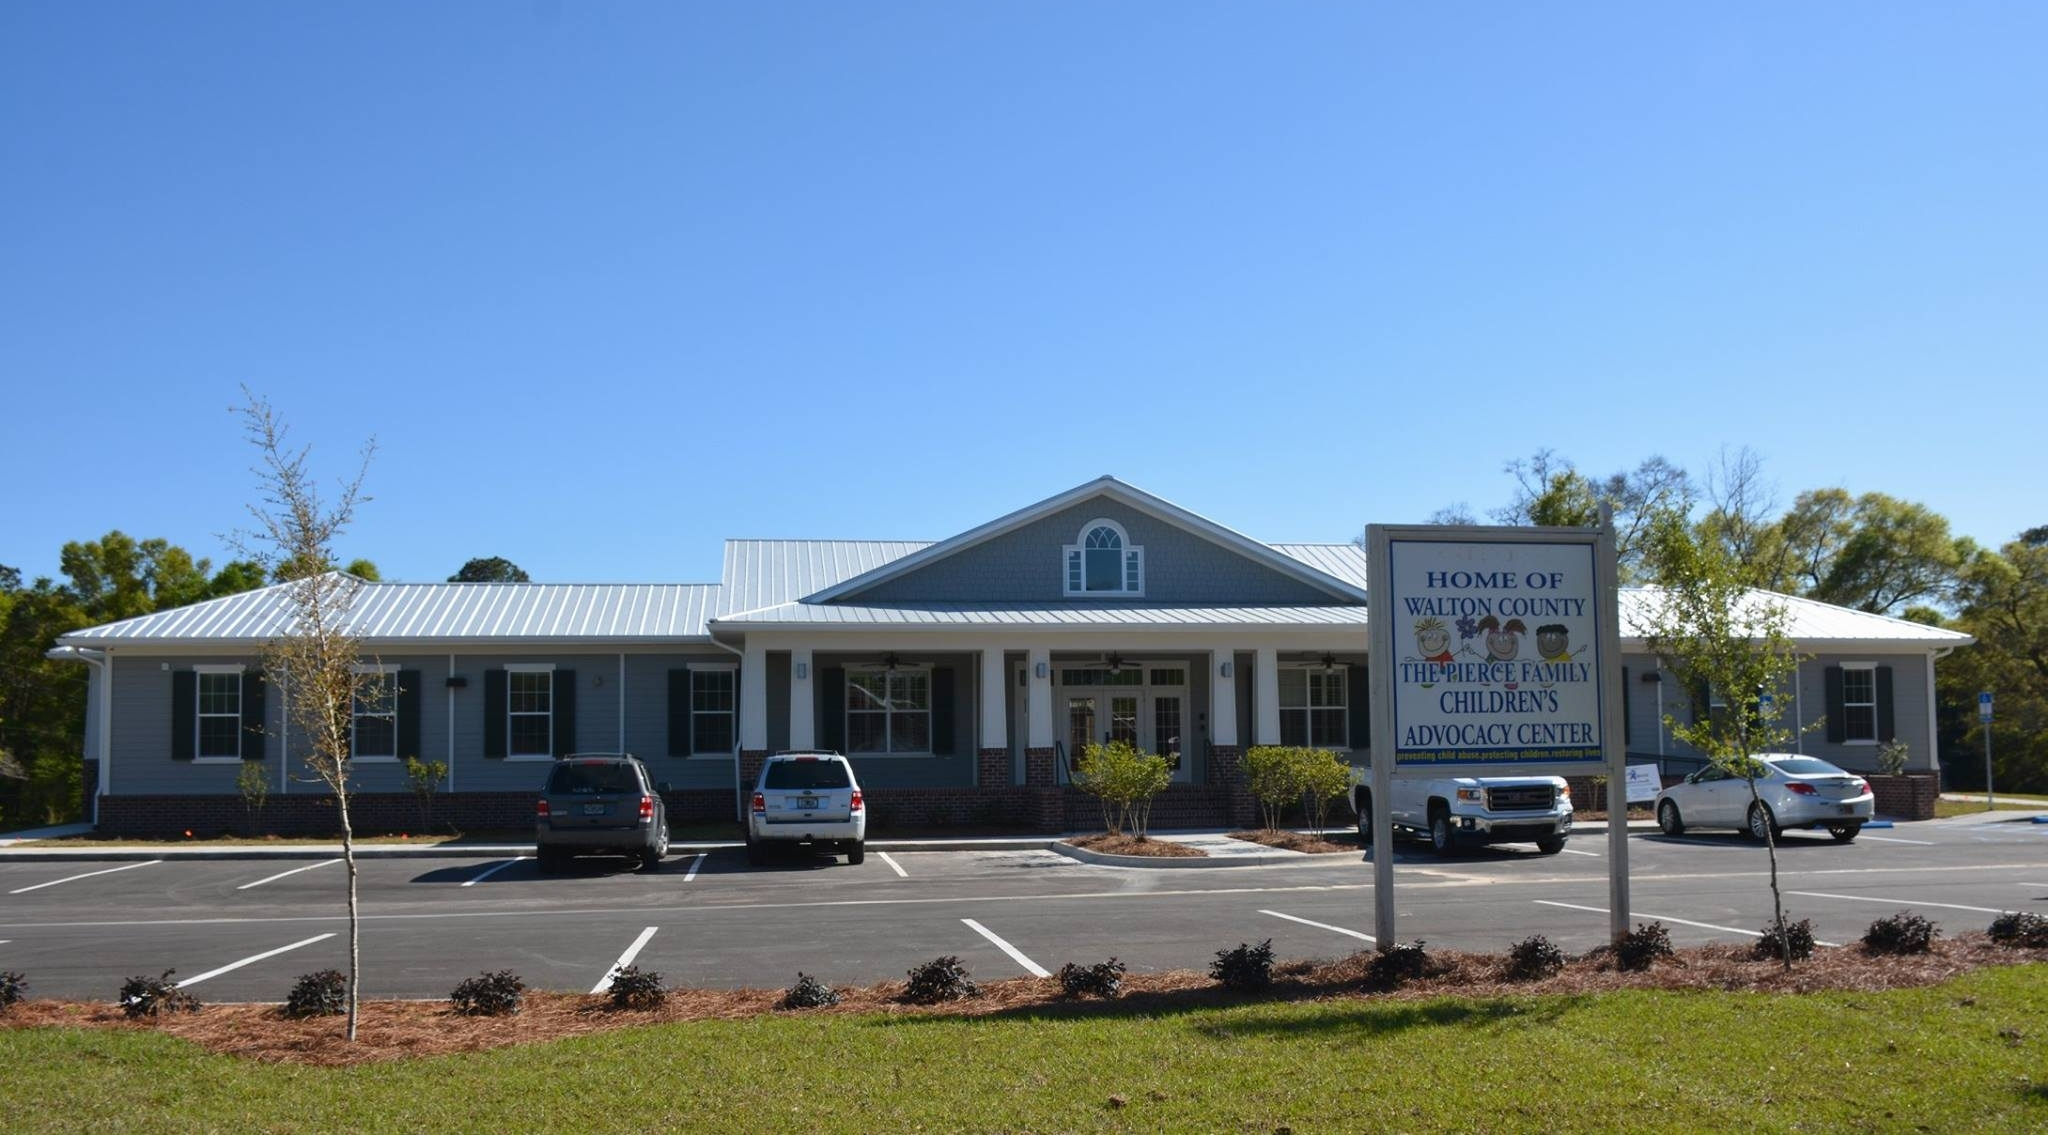 WALTON COUNTY PIERCE FAMILY CHILDREN'S ADVOCACY CENTER 336 College Ave., DeFuniak Springs, FL 32435